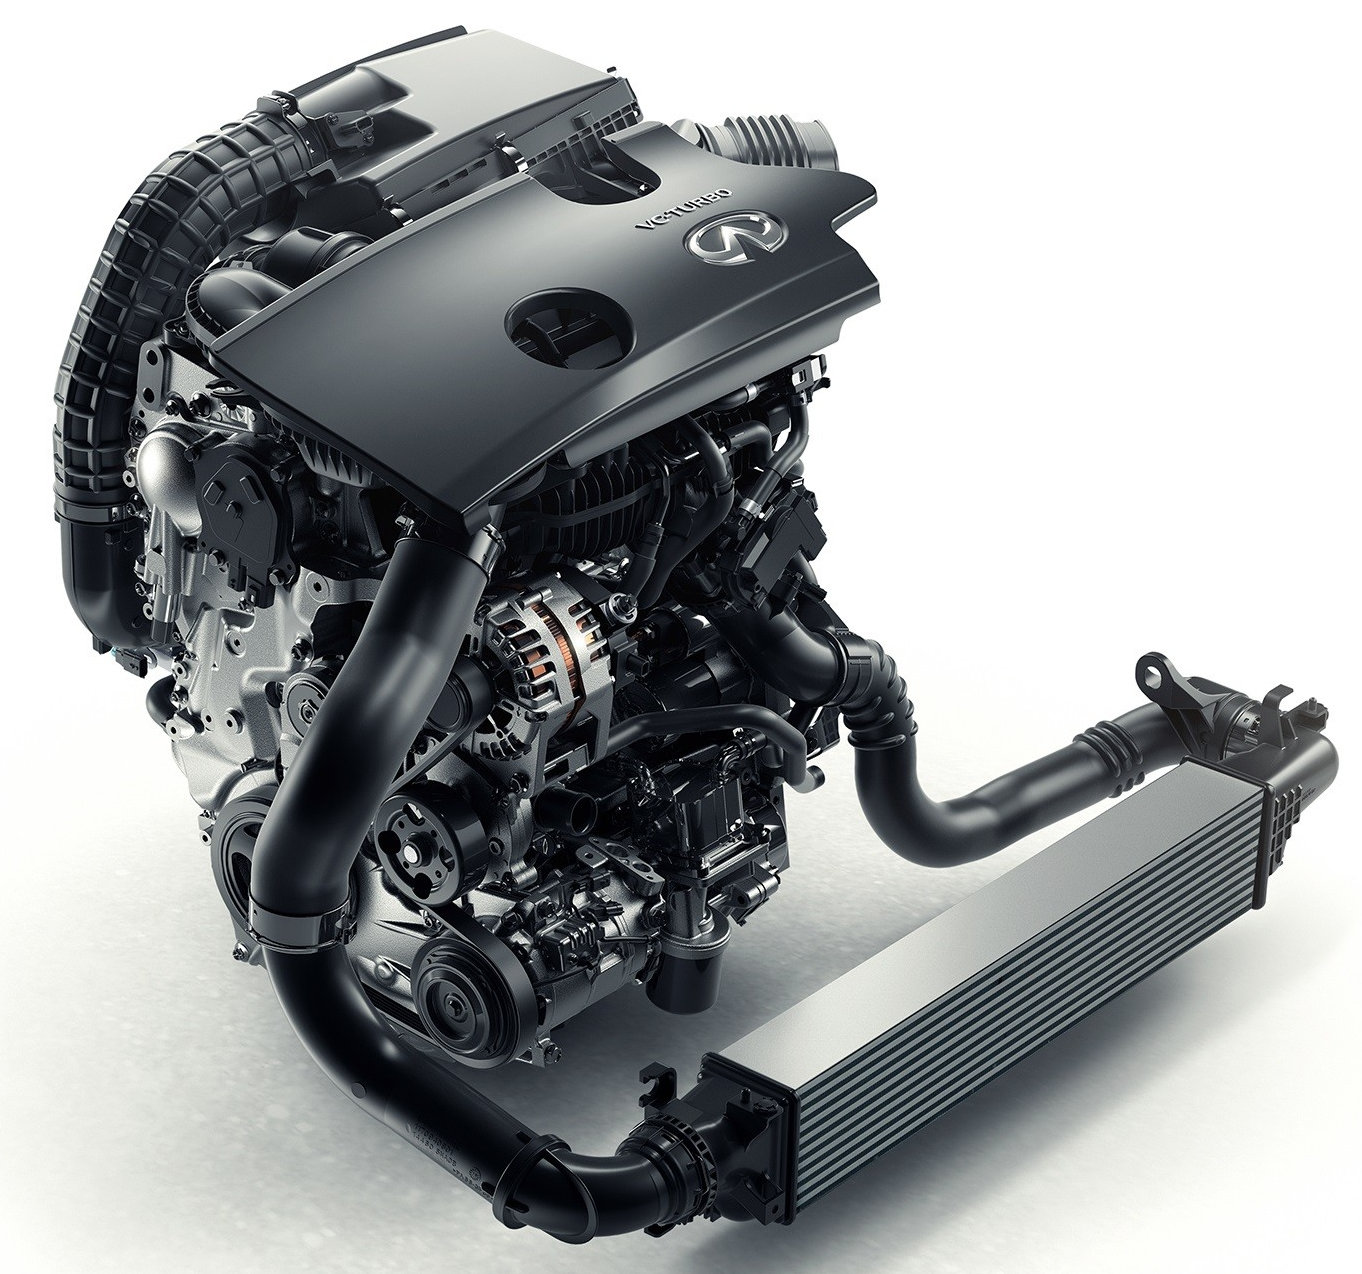 INFINITI VC-T The worlds first production-ready variable compression ratio engine (2)